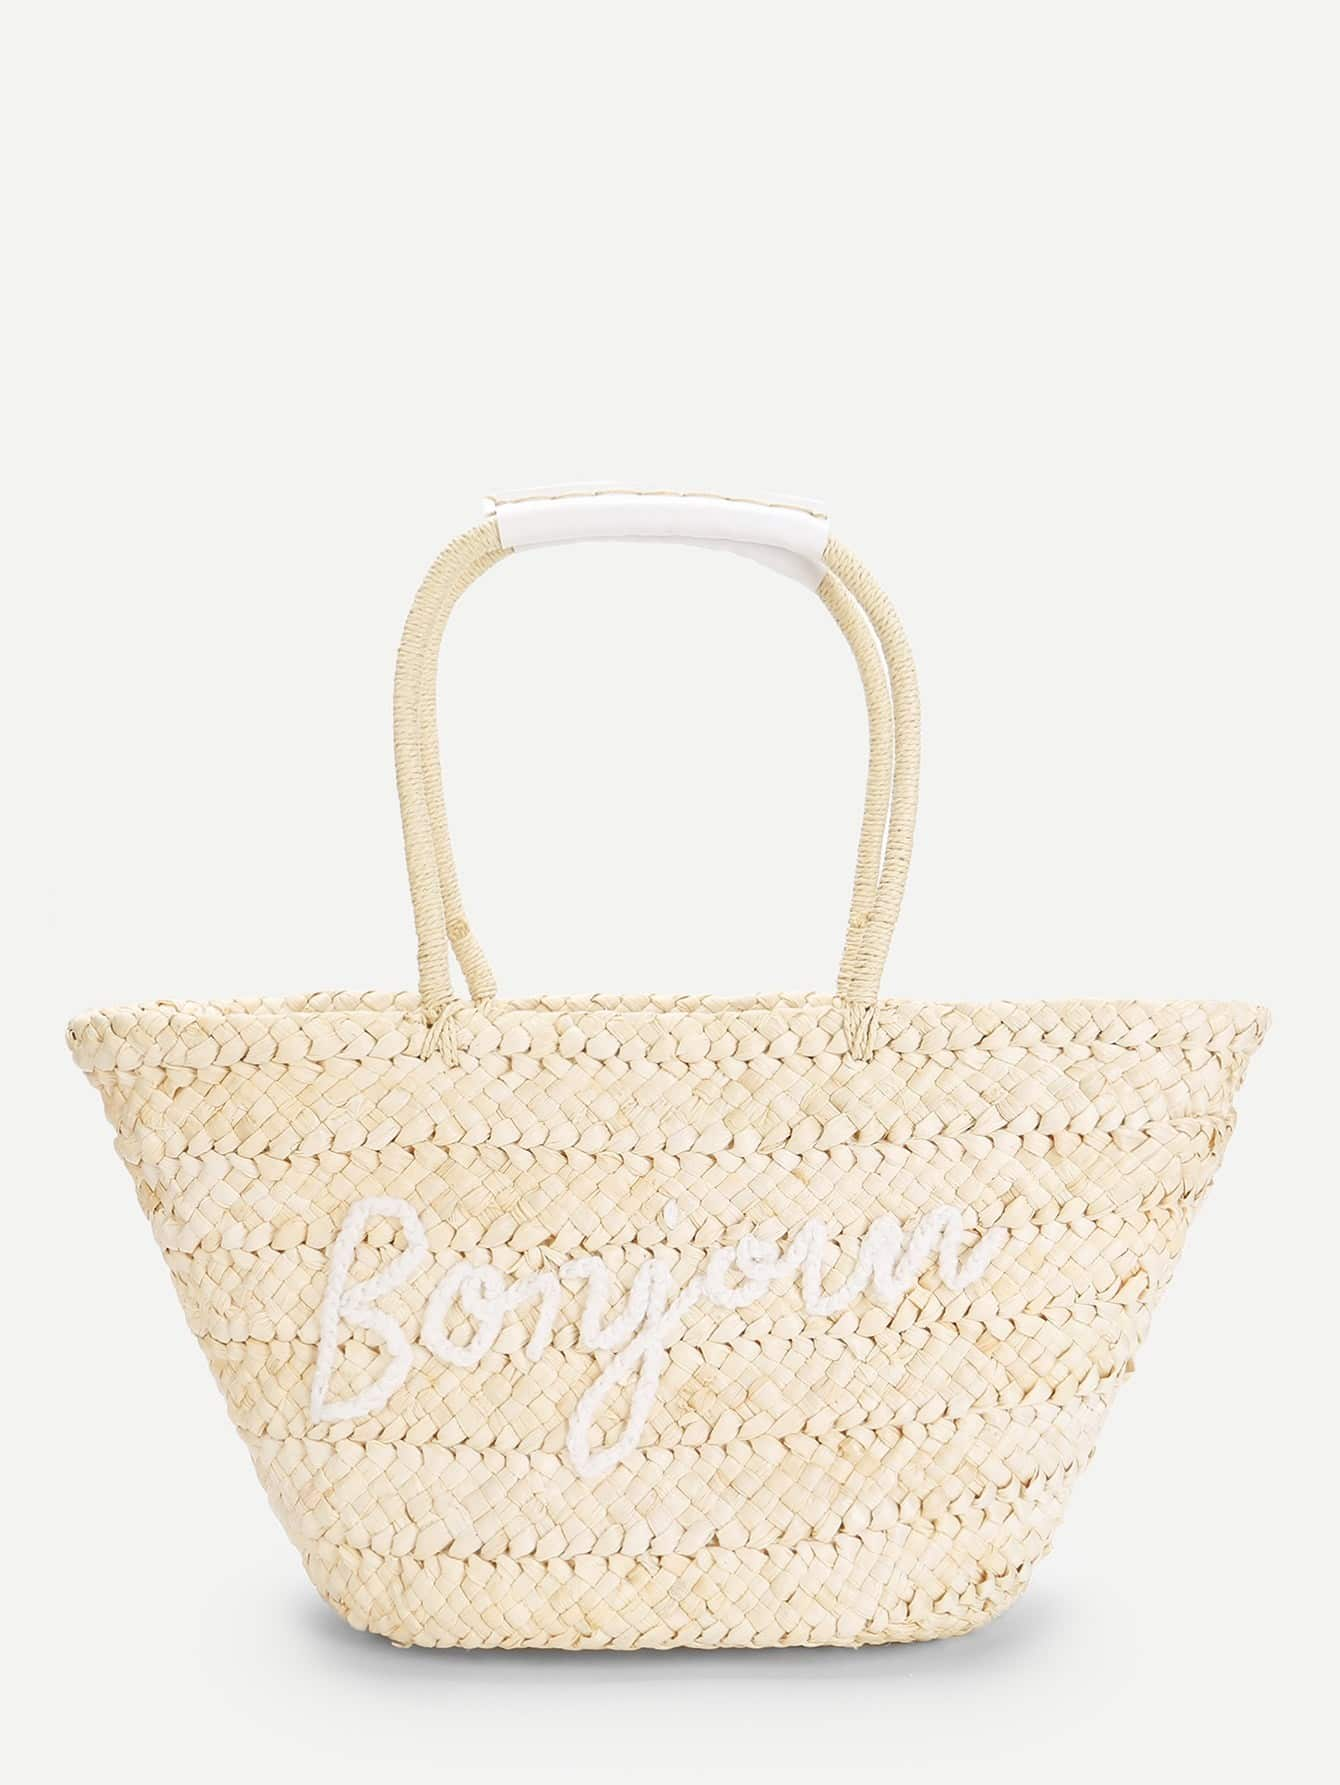 Letter Pattern Straw Tote Bag palm tree pattern straw chain bag